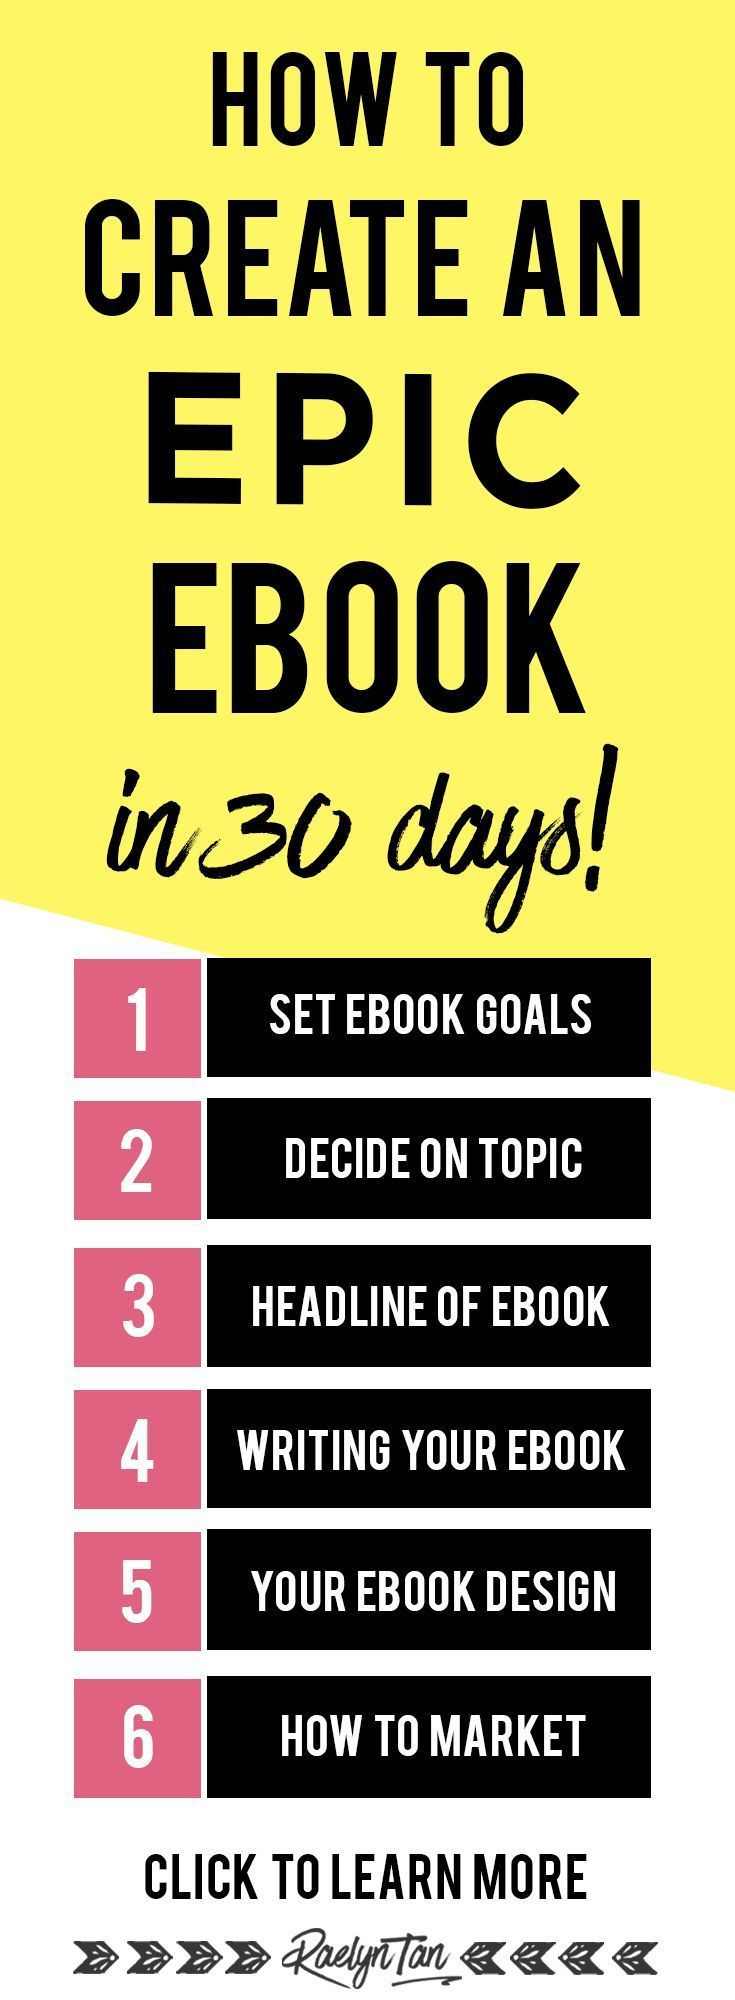 How to Write & Launch An Epic Ebook in 30 Days (Stepbystep) is part of Start online business, Marketing, Online business, Marketing tips, Writing, Business blog - Hey! Here's a stepbystep guide for you to write an epic ebook that will bring your blog and business to the next level  It's time to create your ebook